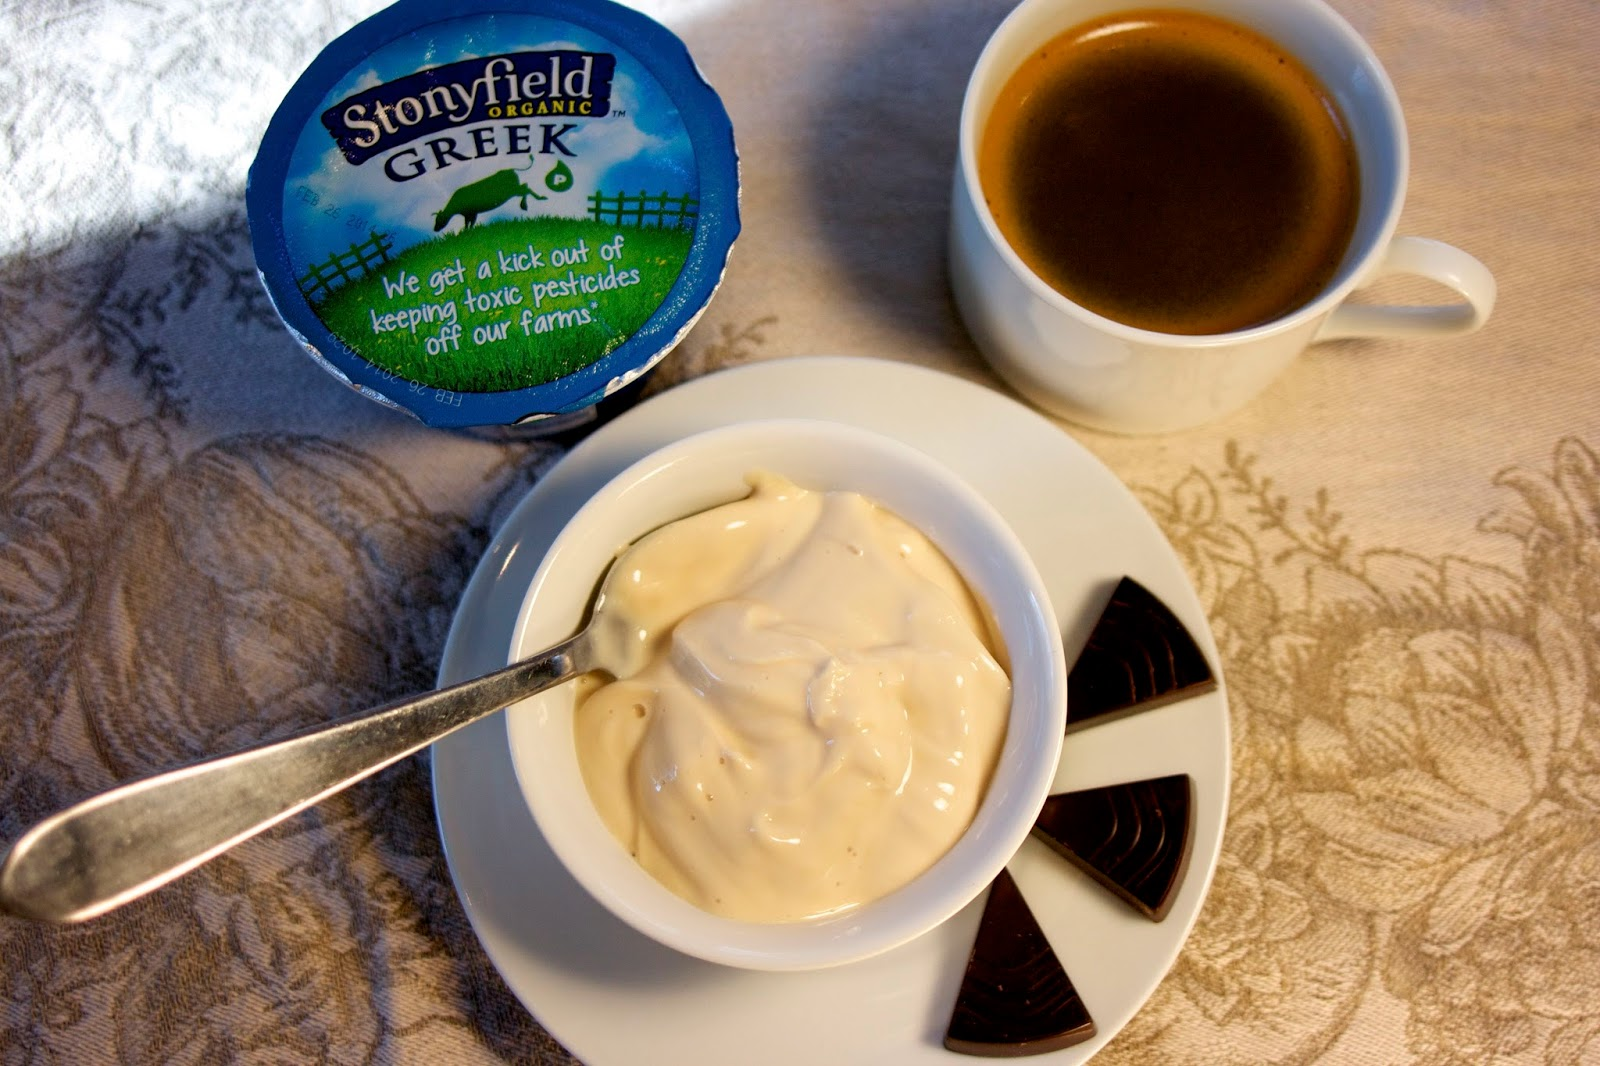 Stonyfield caffe latte greek yogurt: simple living and eating